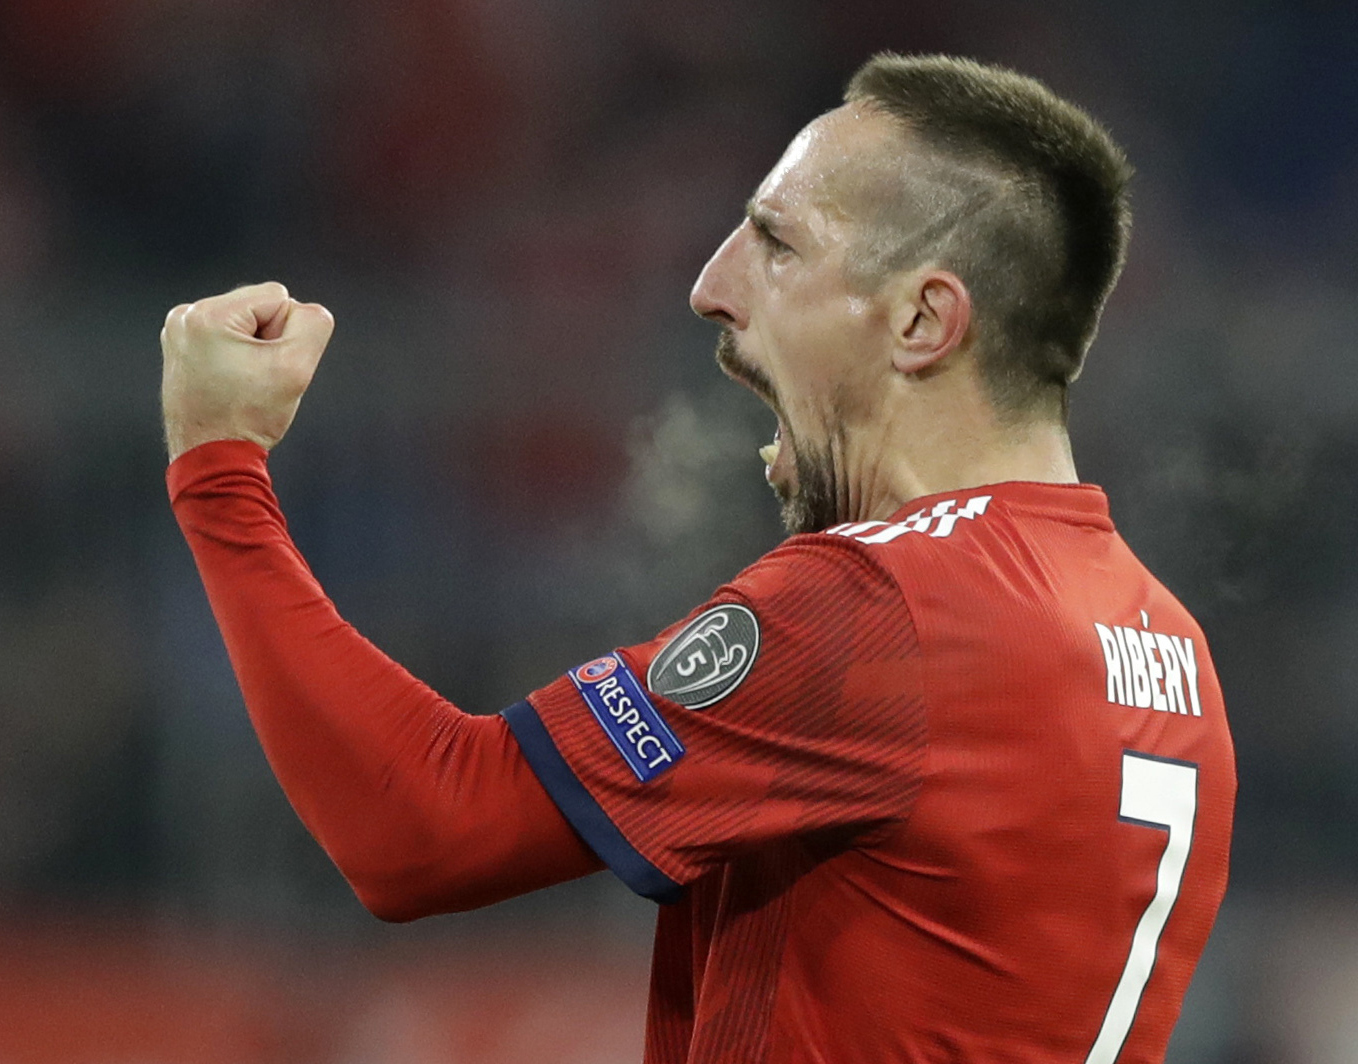 Ribery's presumed farewell proving difficult for Bayern